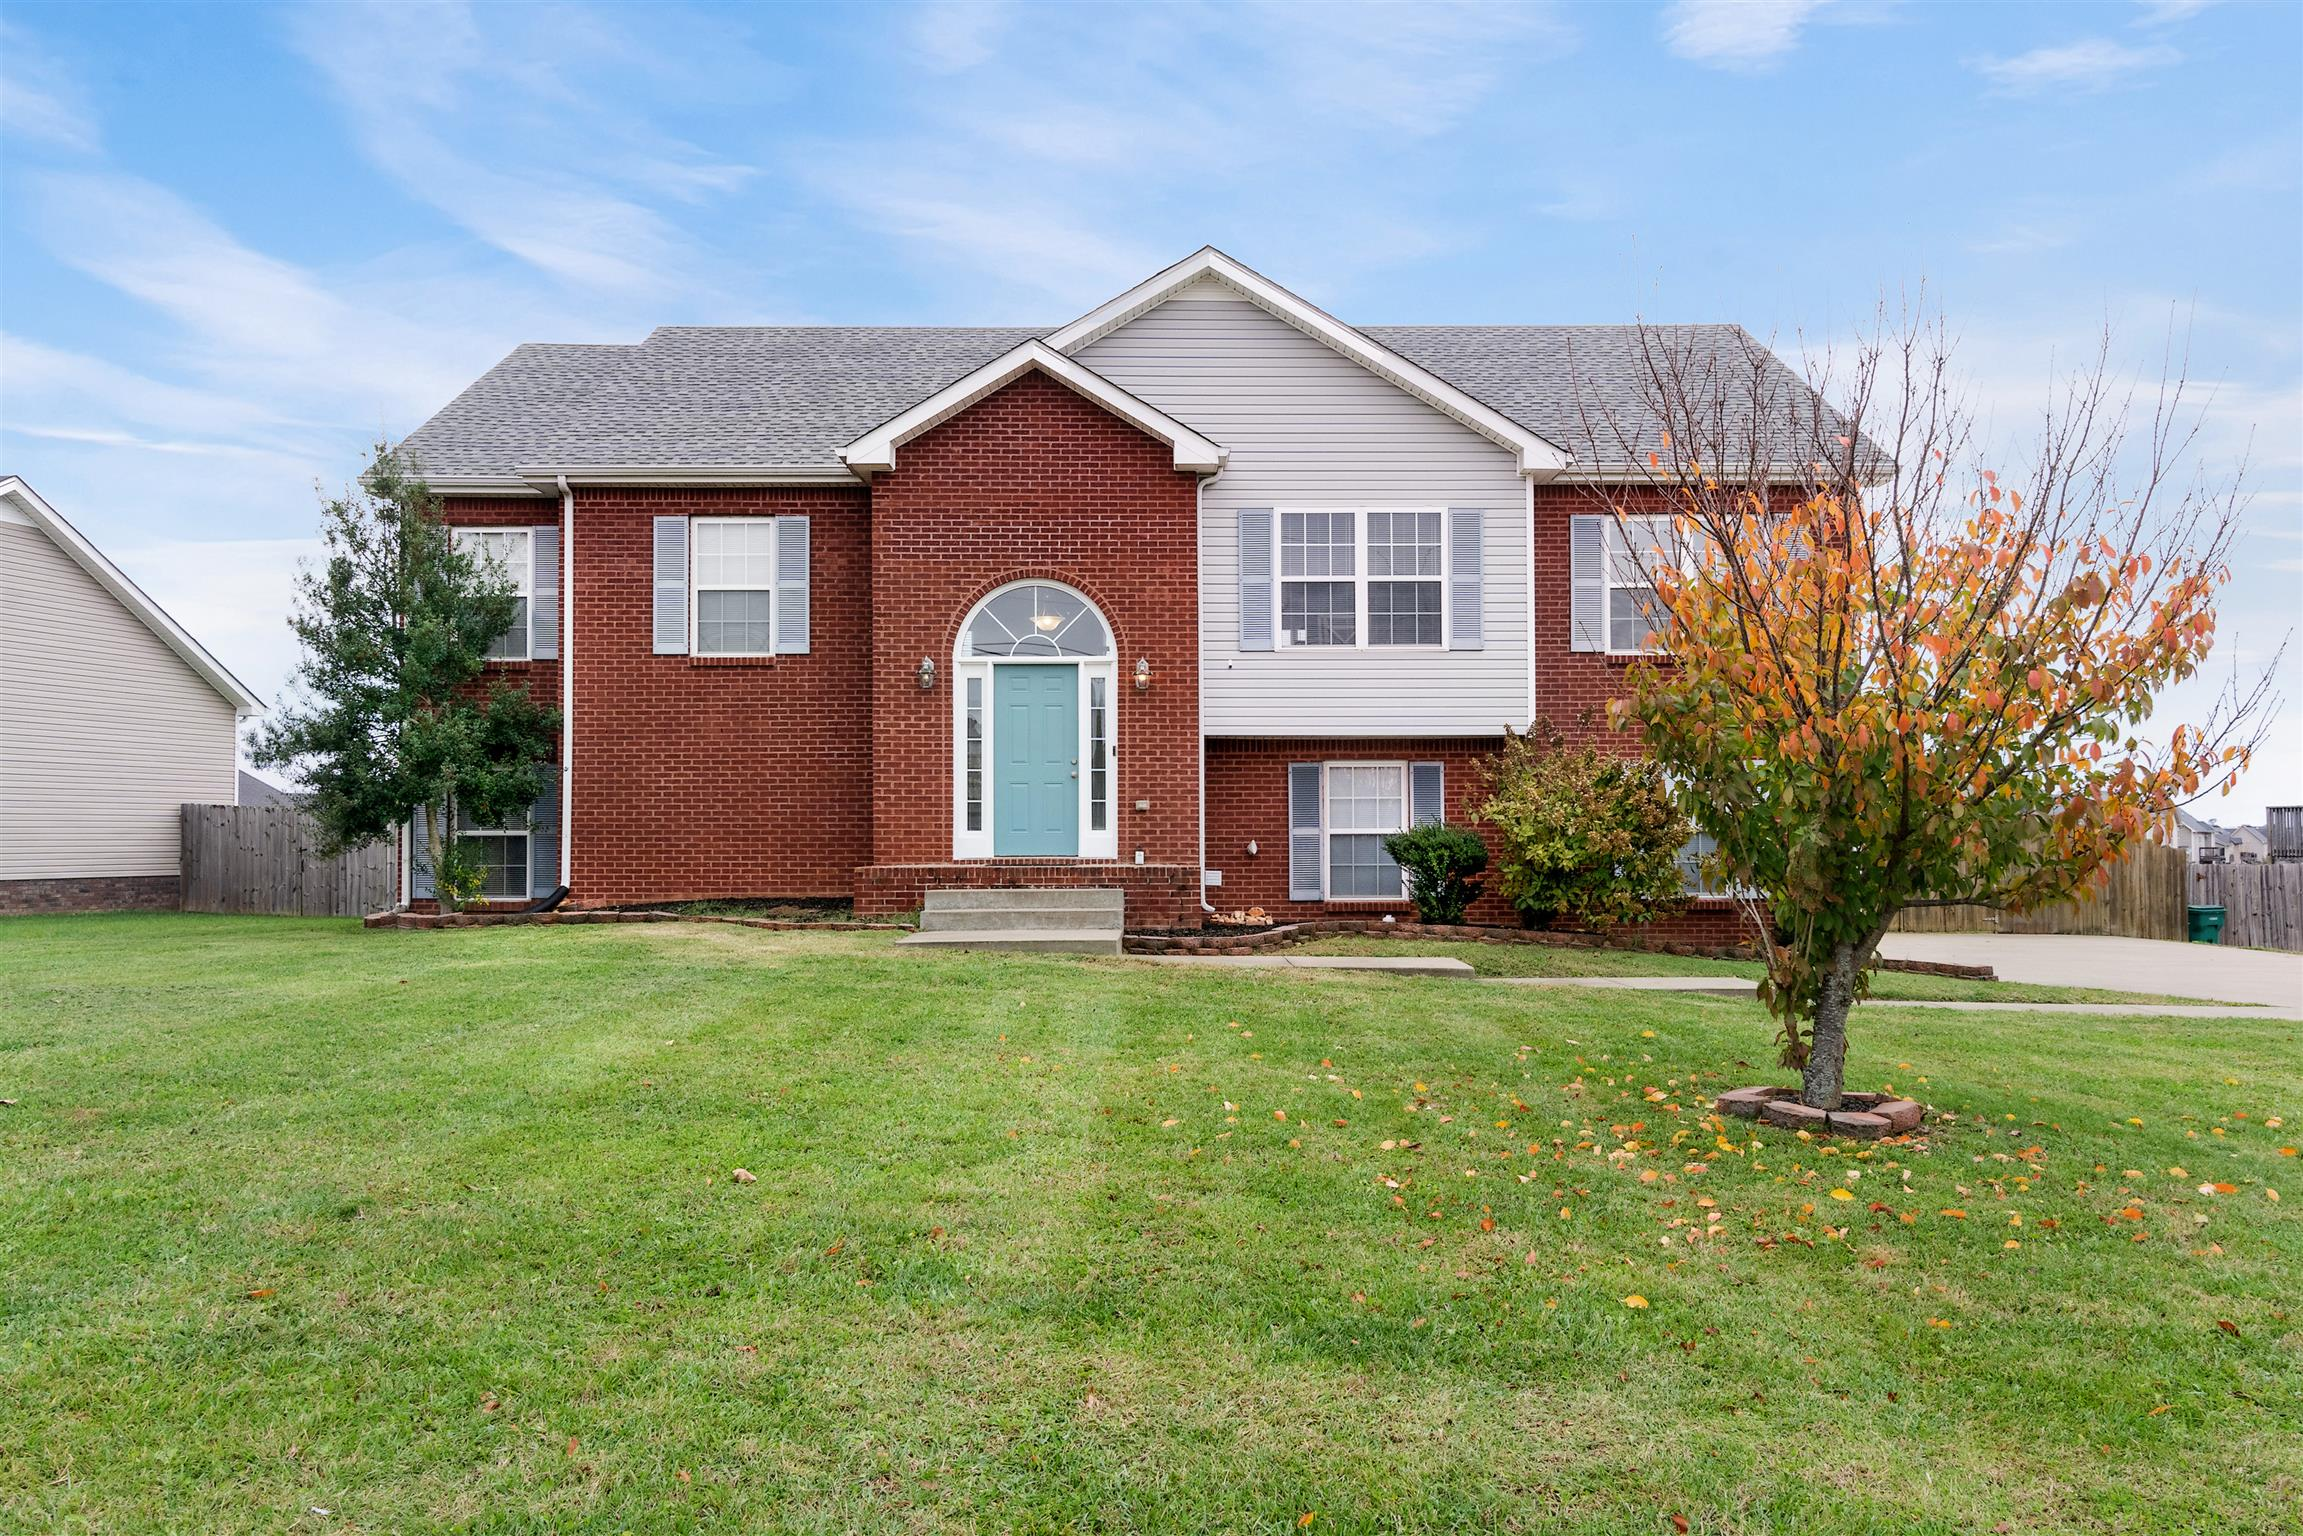 3176 Twelve Oaks Blvd, Fort Campbell, Tennessee